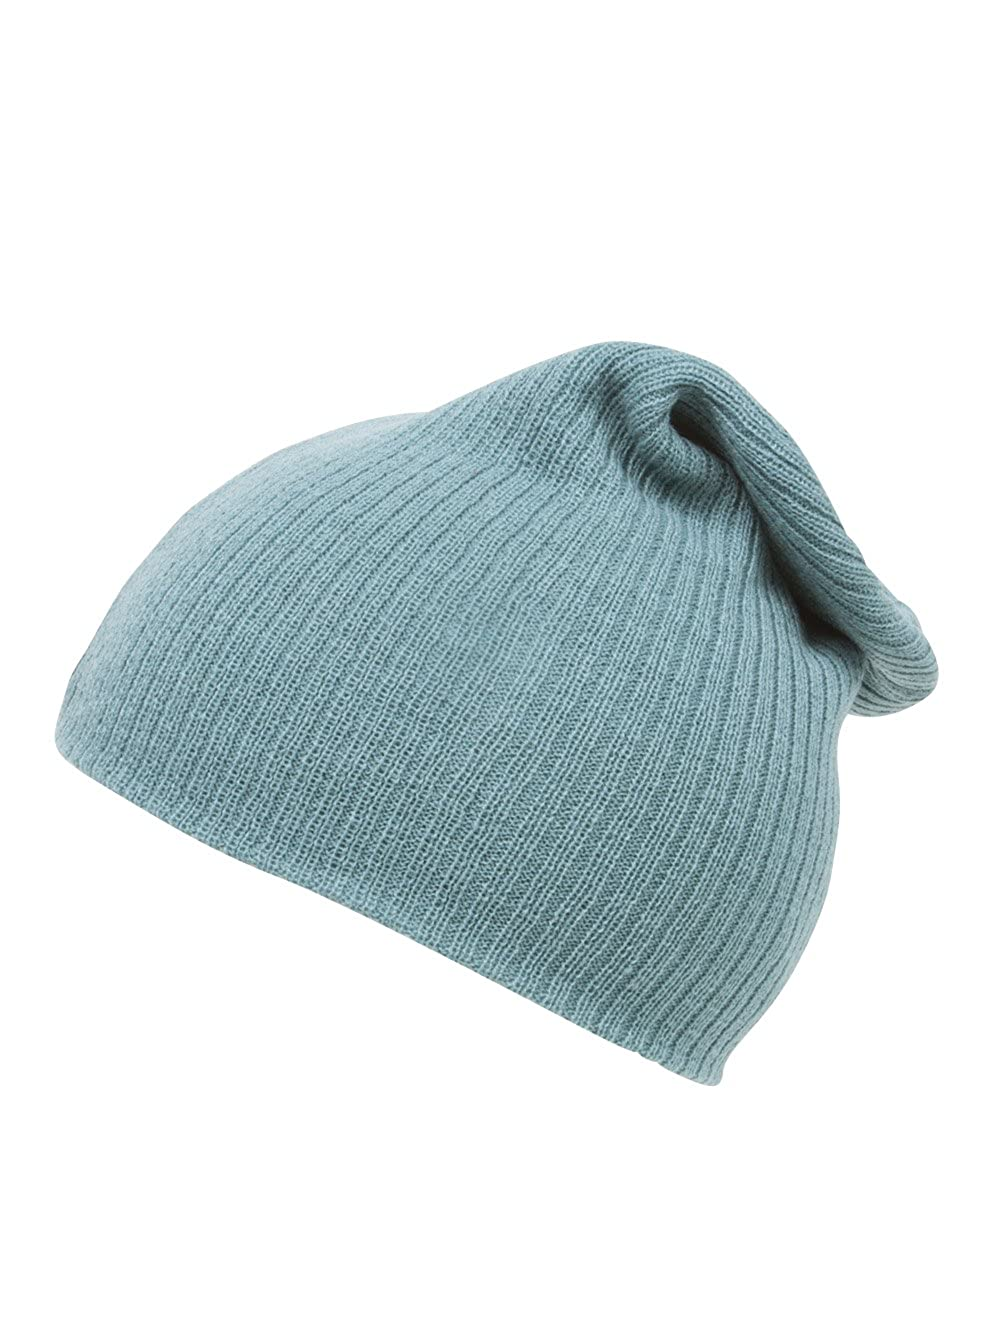 a64cded4347 Amazon.com  Long Slouchy Ribbed Beanie - Pastel Teal  Clothing